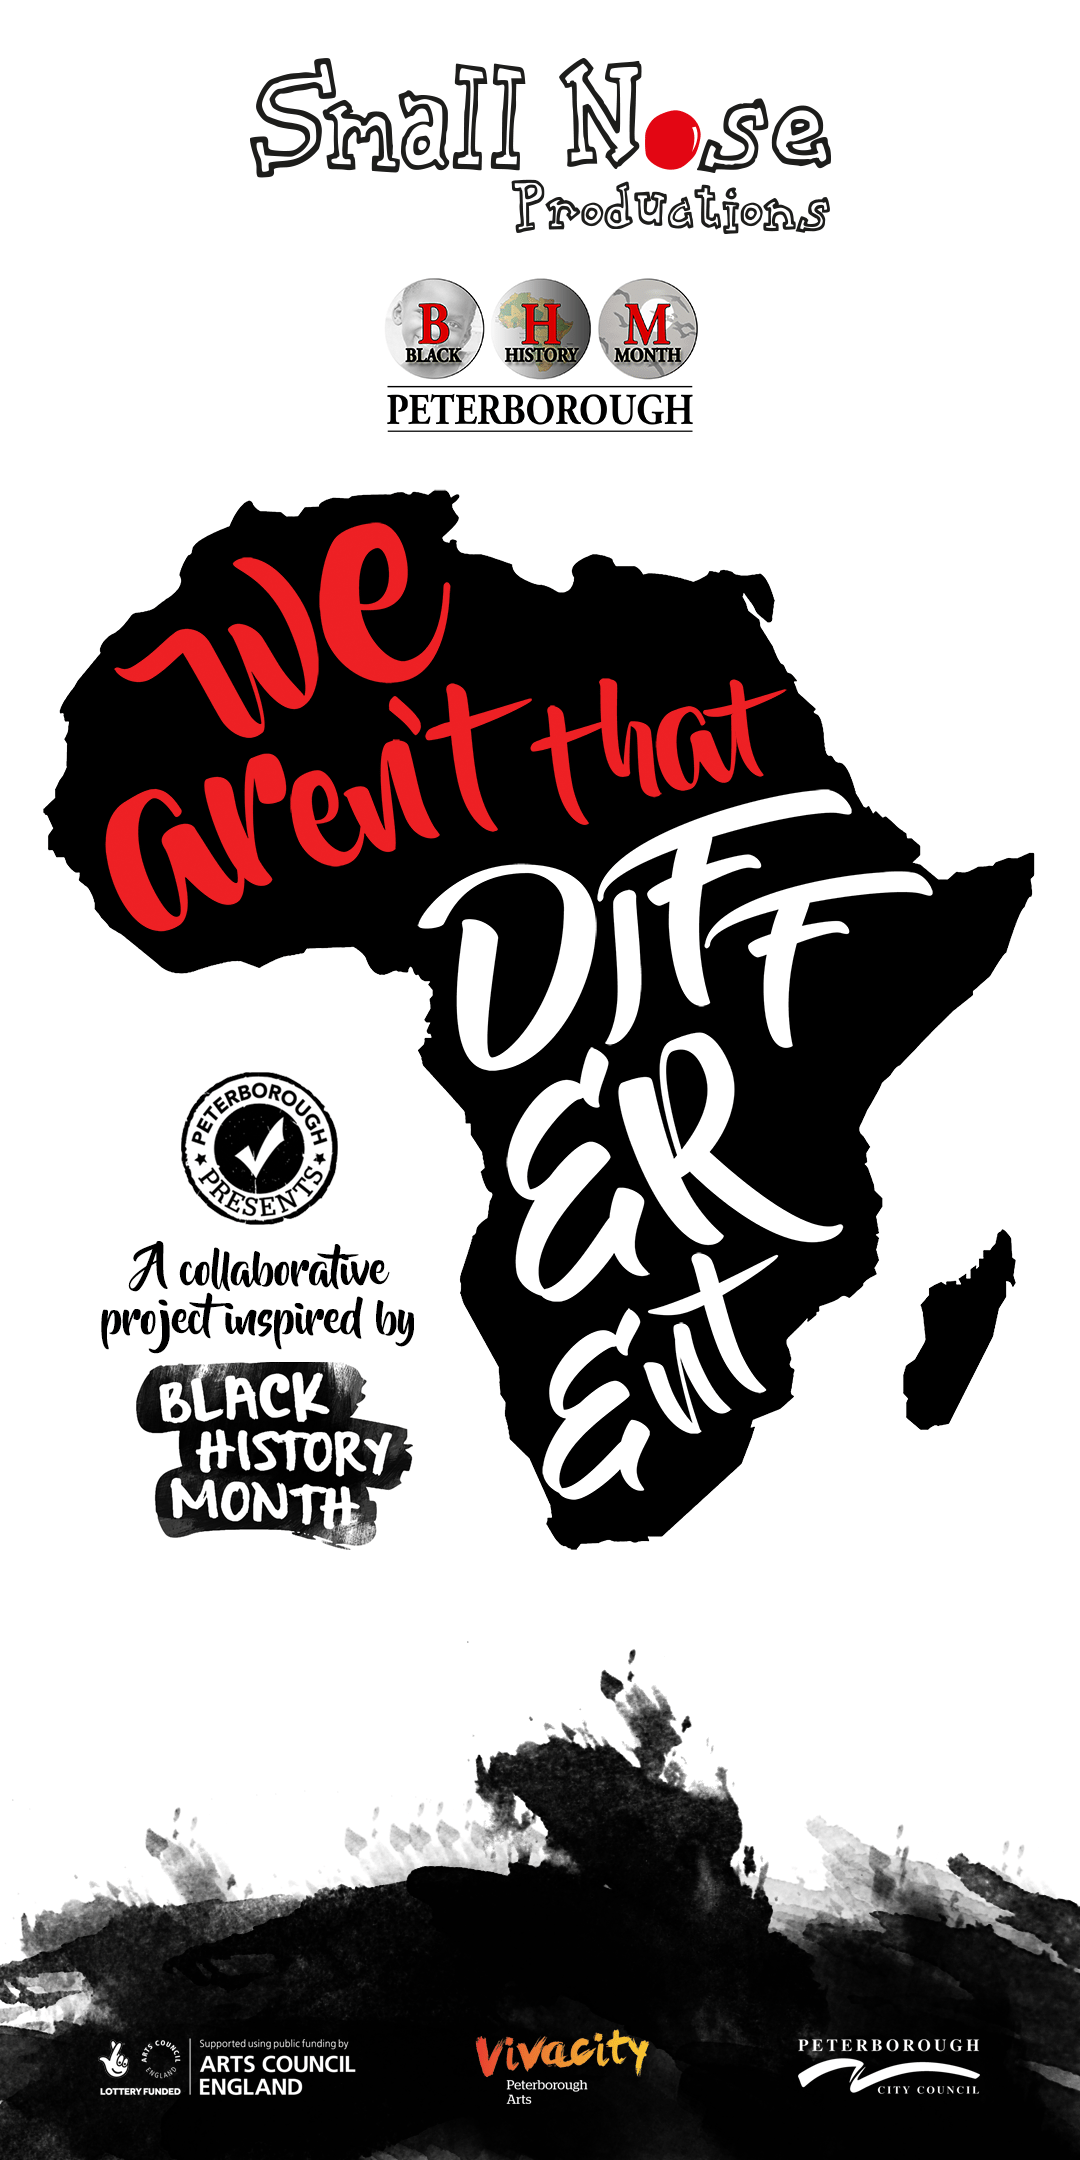 We Aren't That Different (Black History Month) | Blacknet UK